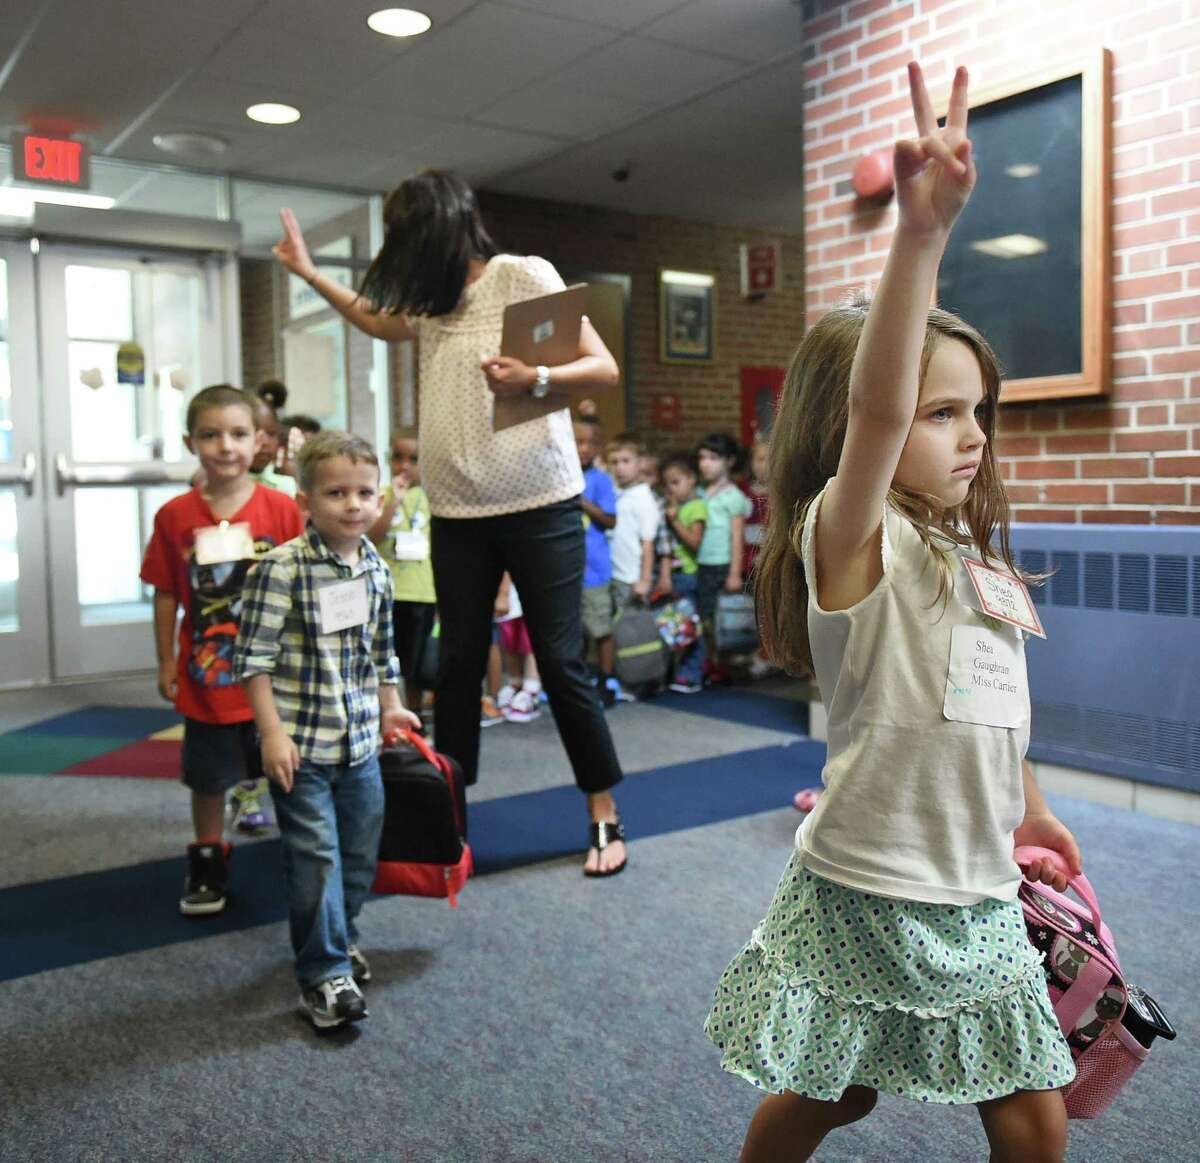 Catherine Avalone - The Middletown Press Shea Gaughran, a student in Miss Cartier's kindergarten class has learned the ropes early in the first day of school at Edna C. Stevens Elementary School in Cromwell Wednesday.